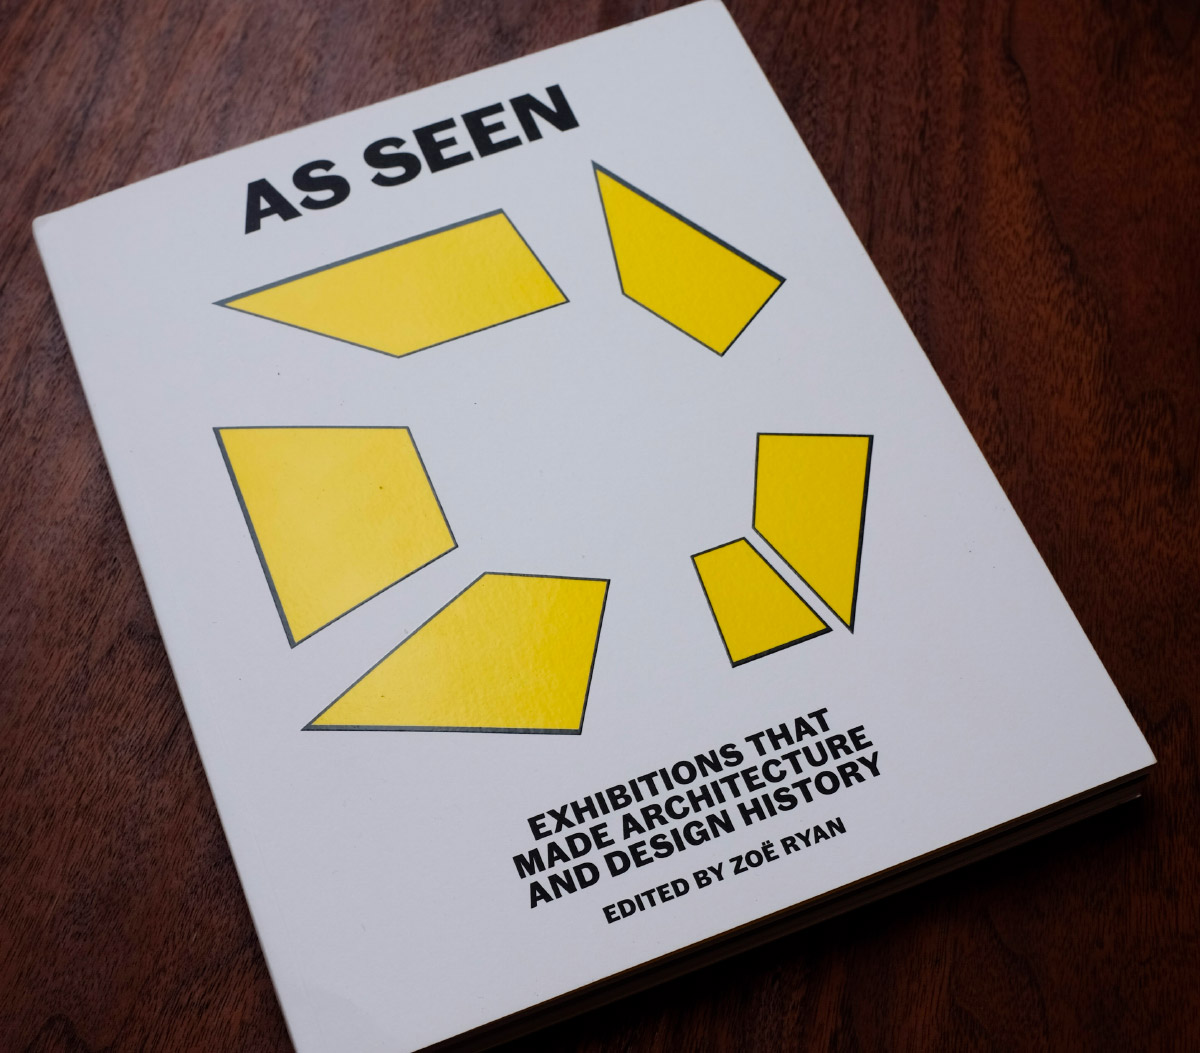 A historical compendium of the art of exhibition-making from a critical and curatorial perspective. (Matthew Messner/AN)